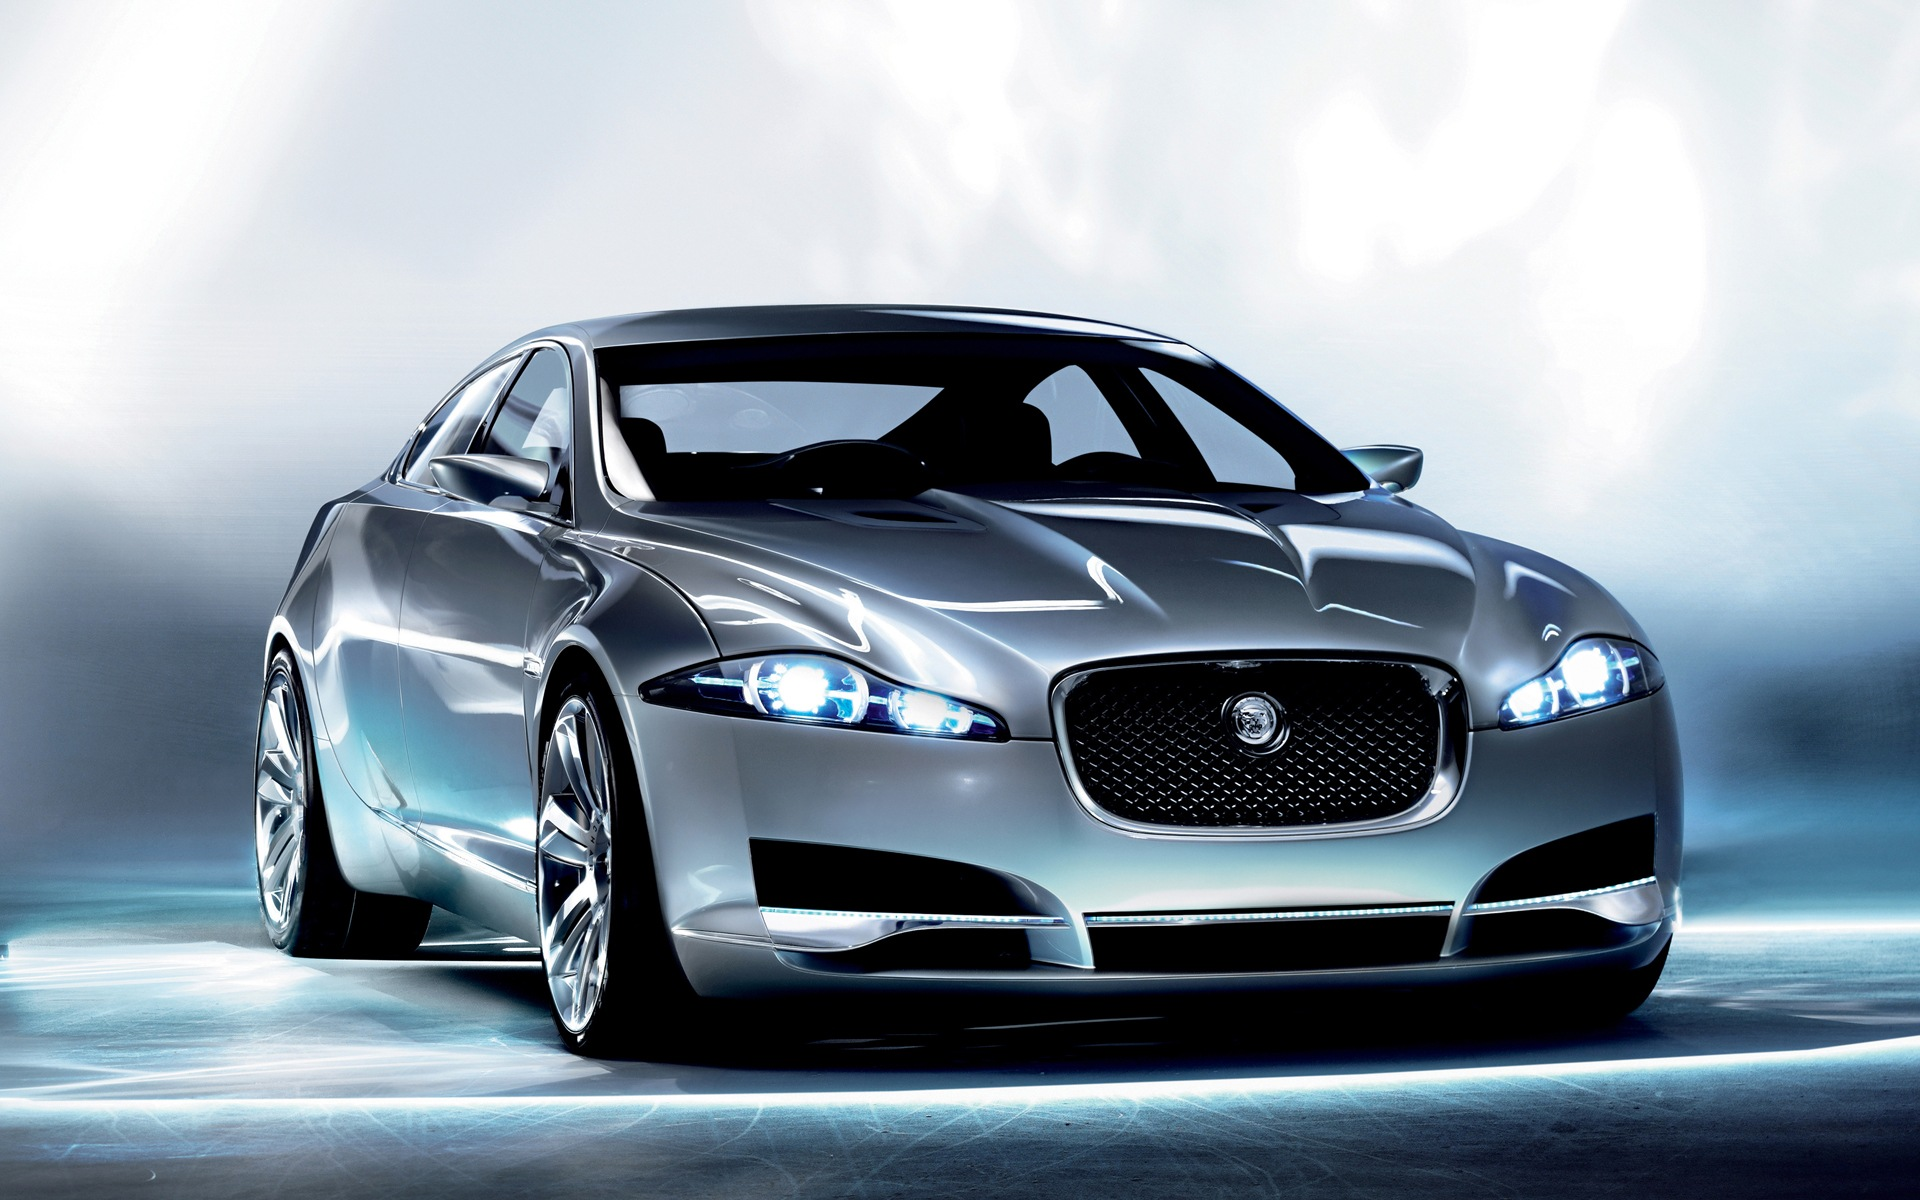 Jaguar Car Wallpaper Dazzling Wallpapers